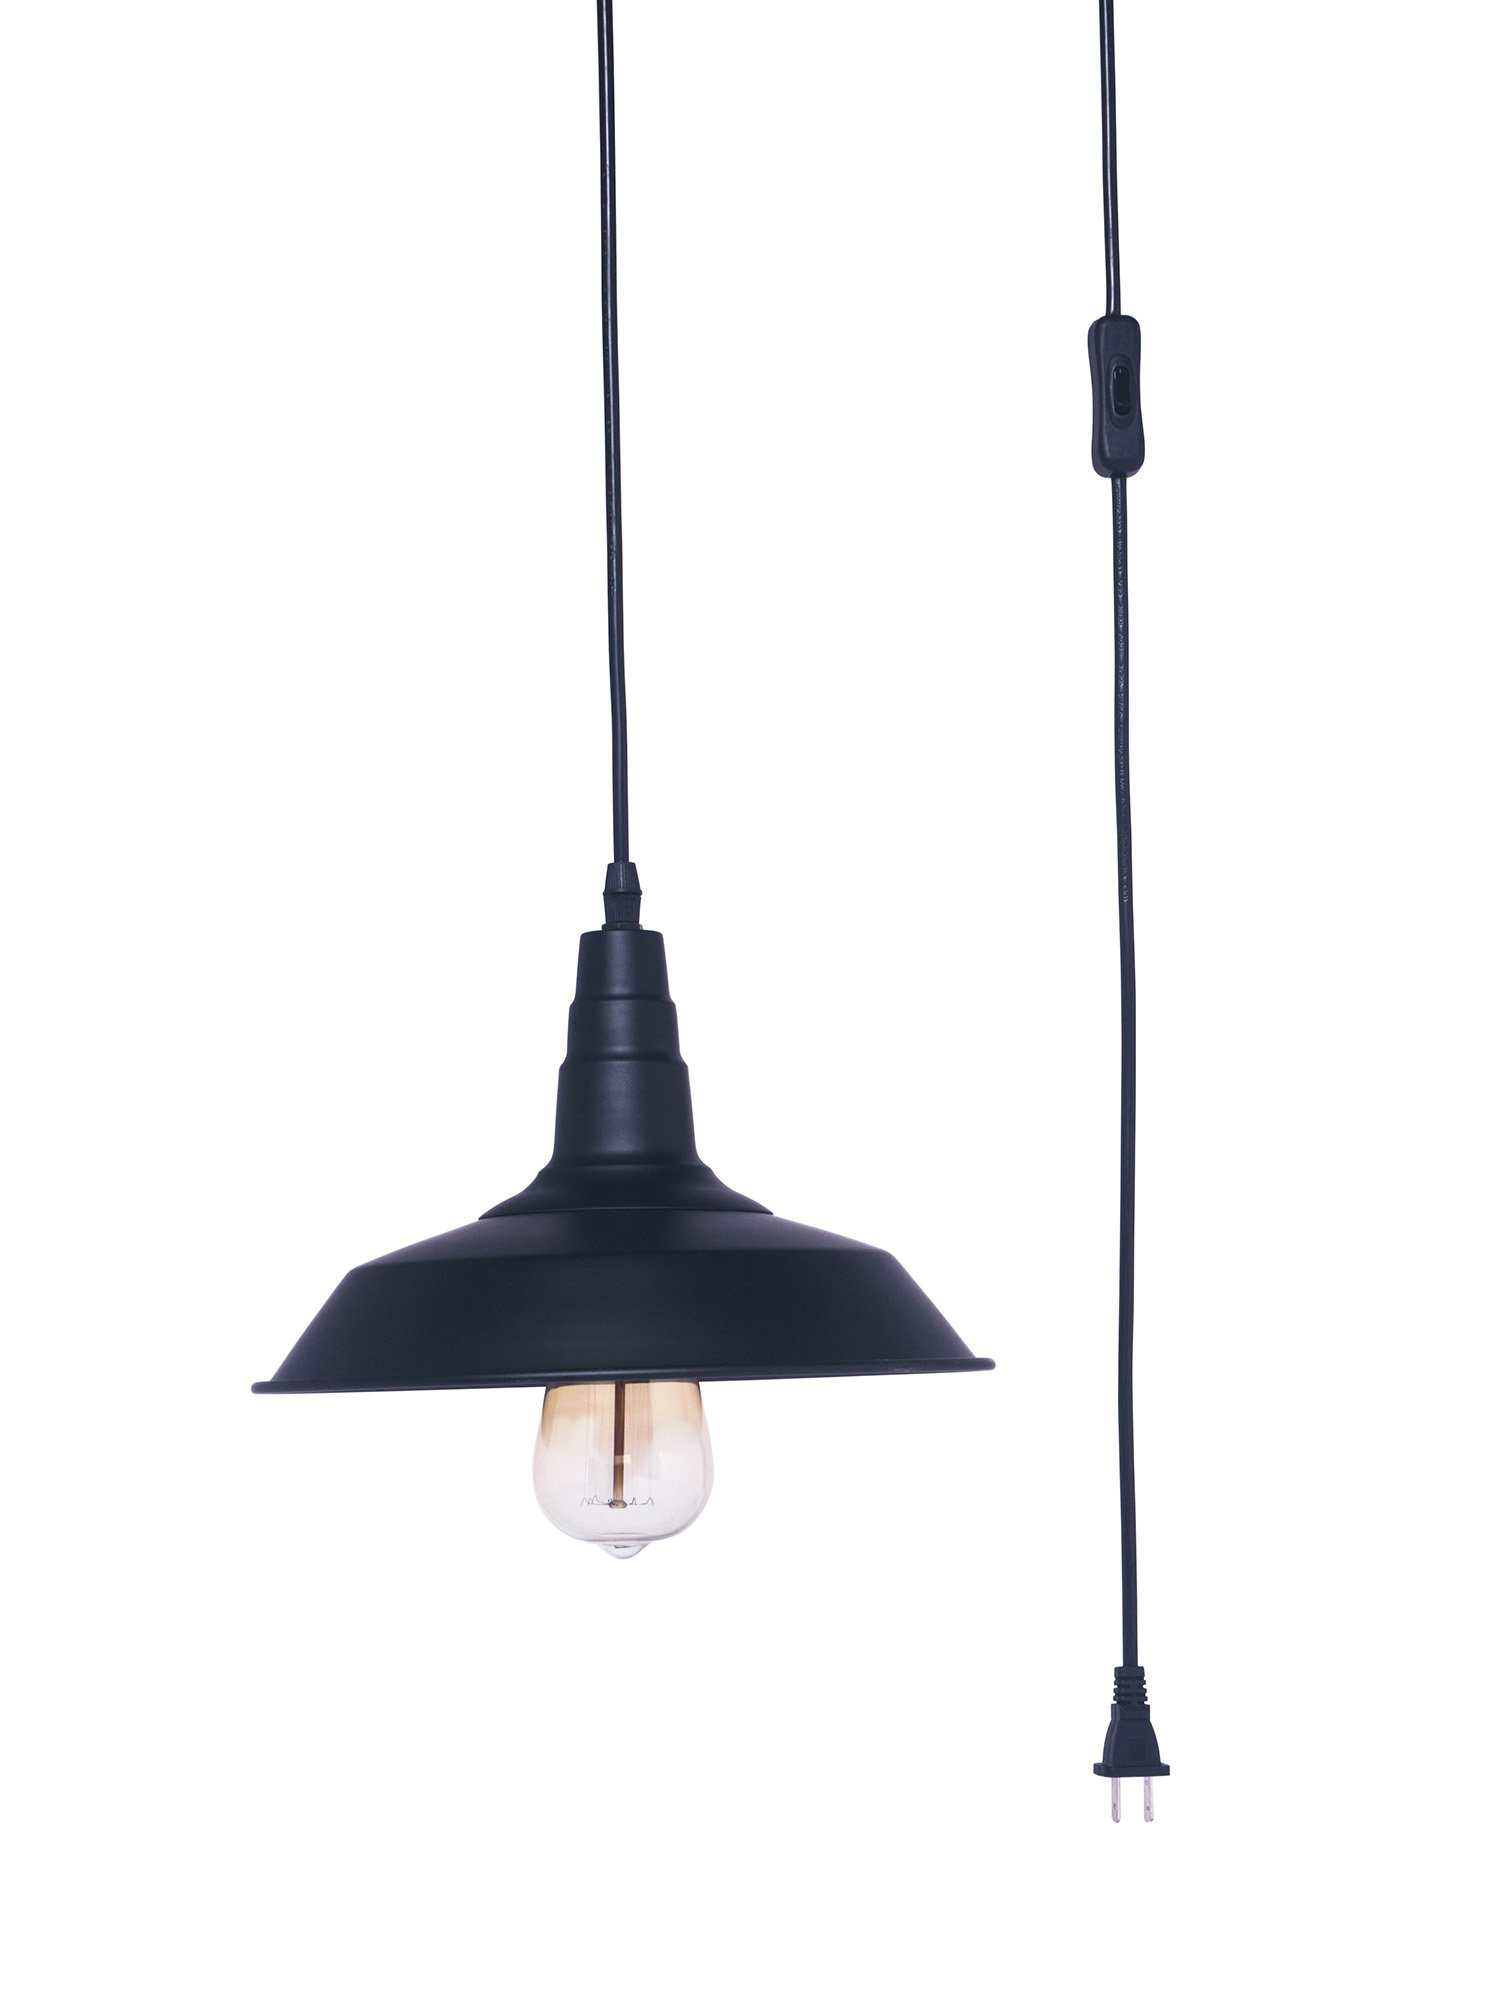 Ivalue Industrial Plug-in Pendant Light Fixture with On/Off Switch Cord Metal Black Warehouse Hanging Pendant Lamp E26 Base Type Bulb Not Included(D-Black-Plug in)